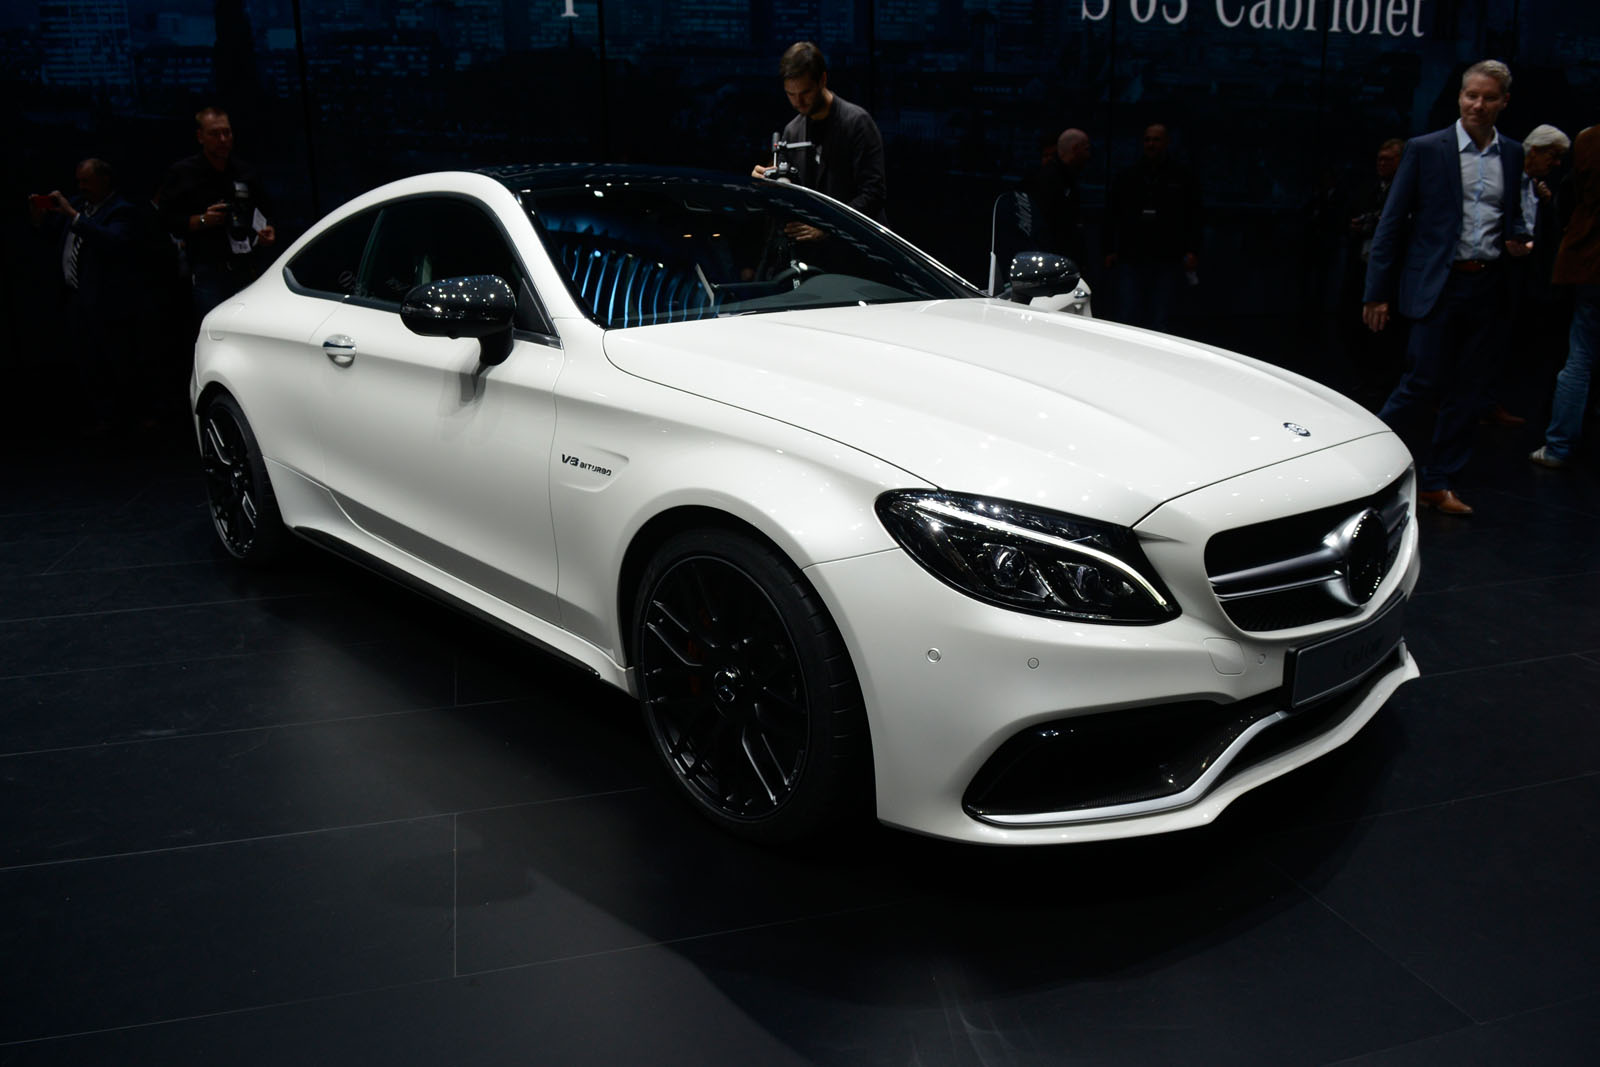 2017 C63 Amg Coupe Price >> 2015 Legacy Carscoops | Autos Post